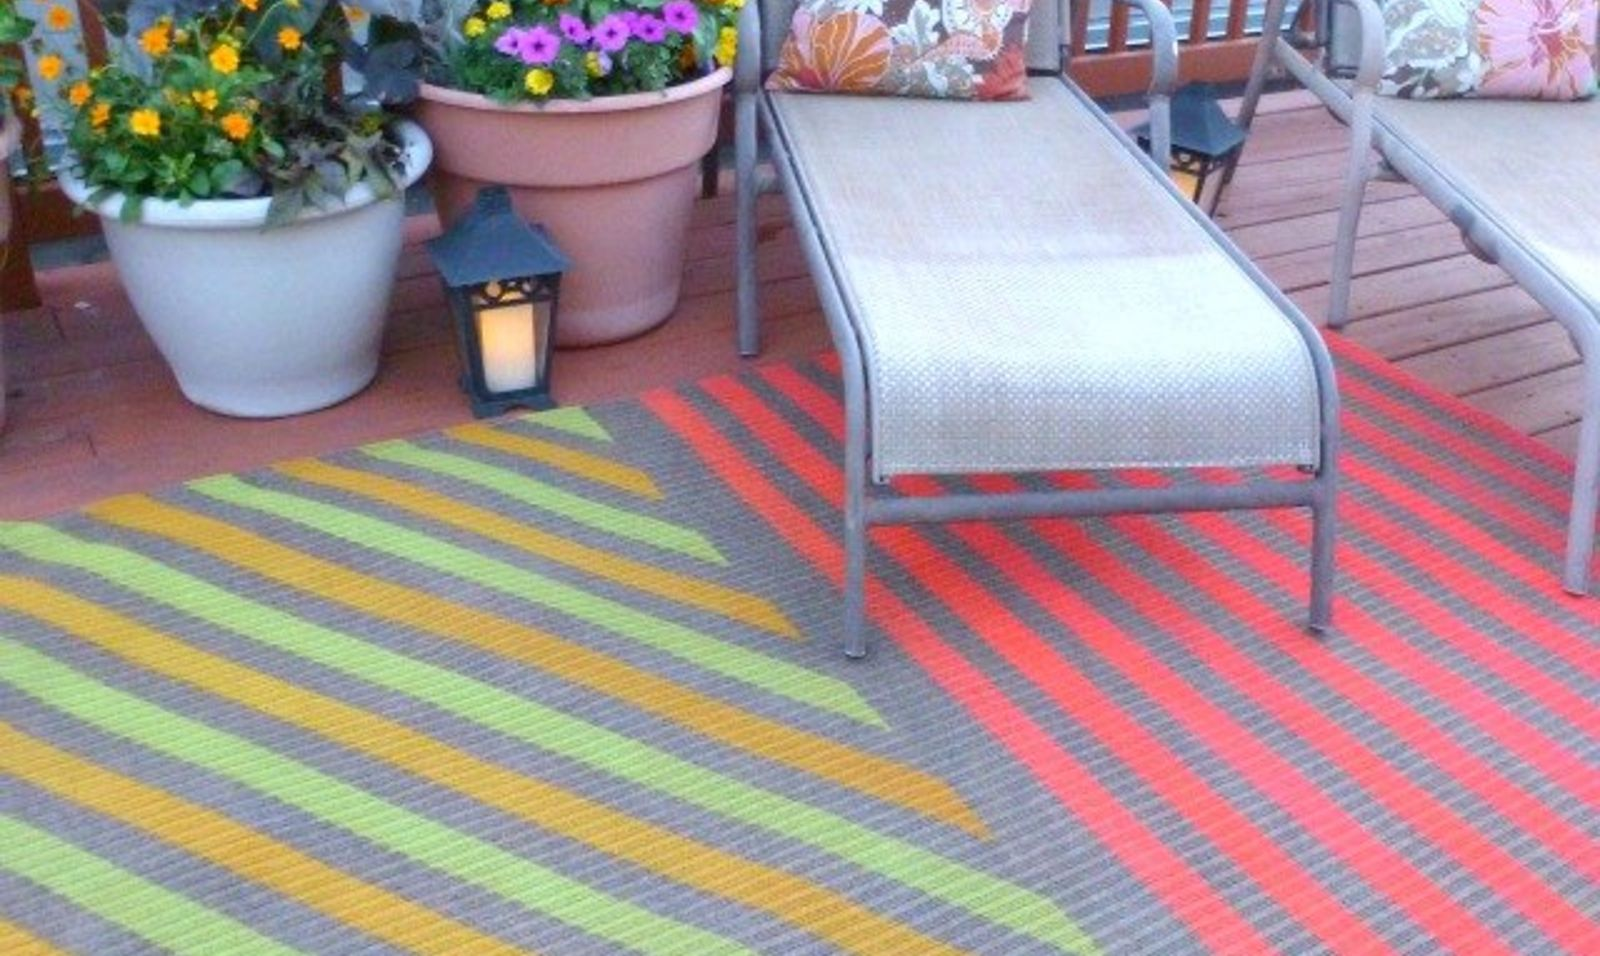 patternplay blakeney and rugs diy rug home of urban justina backyard for every retreat outdoor house courtyard options living beach